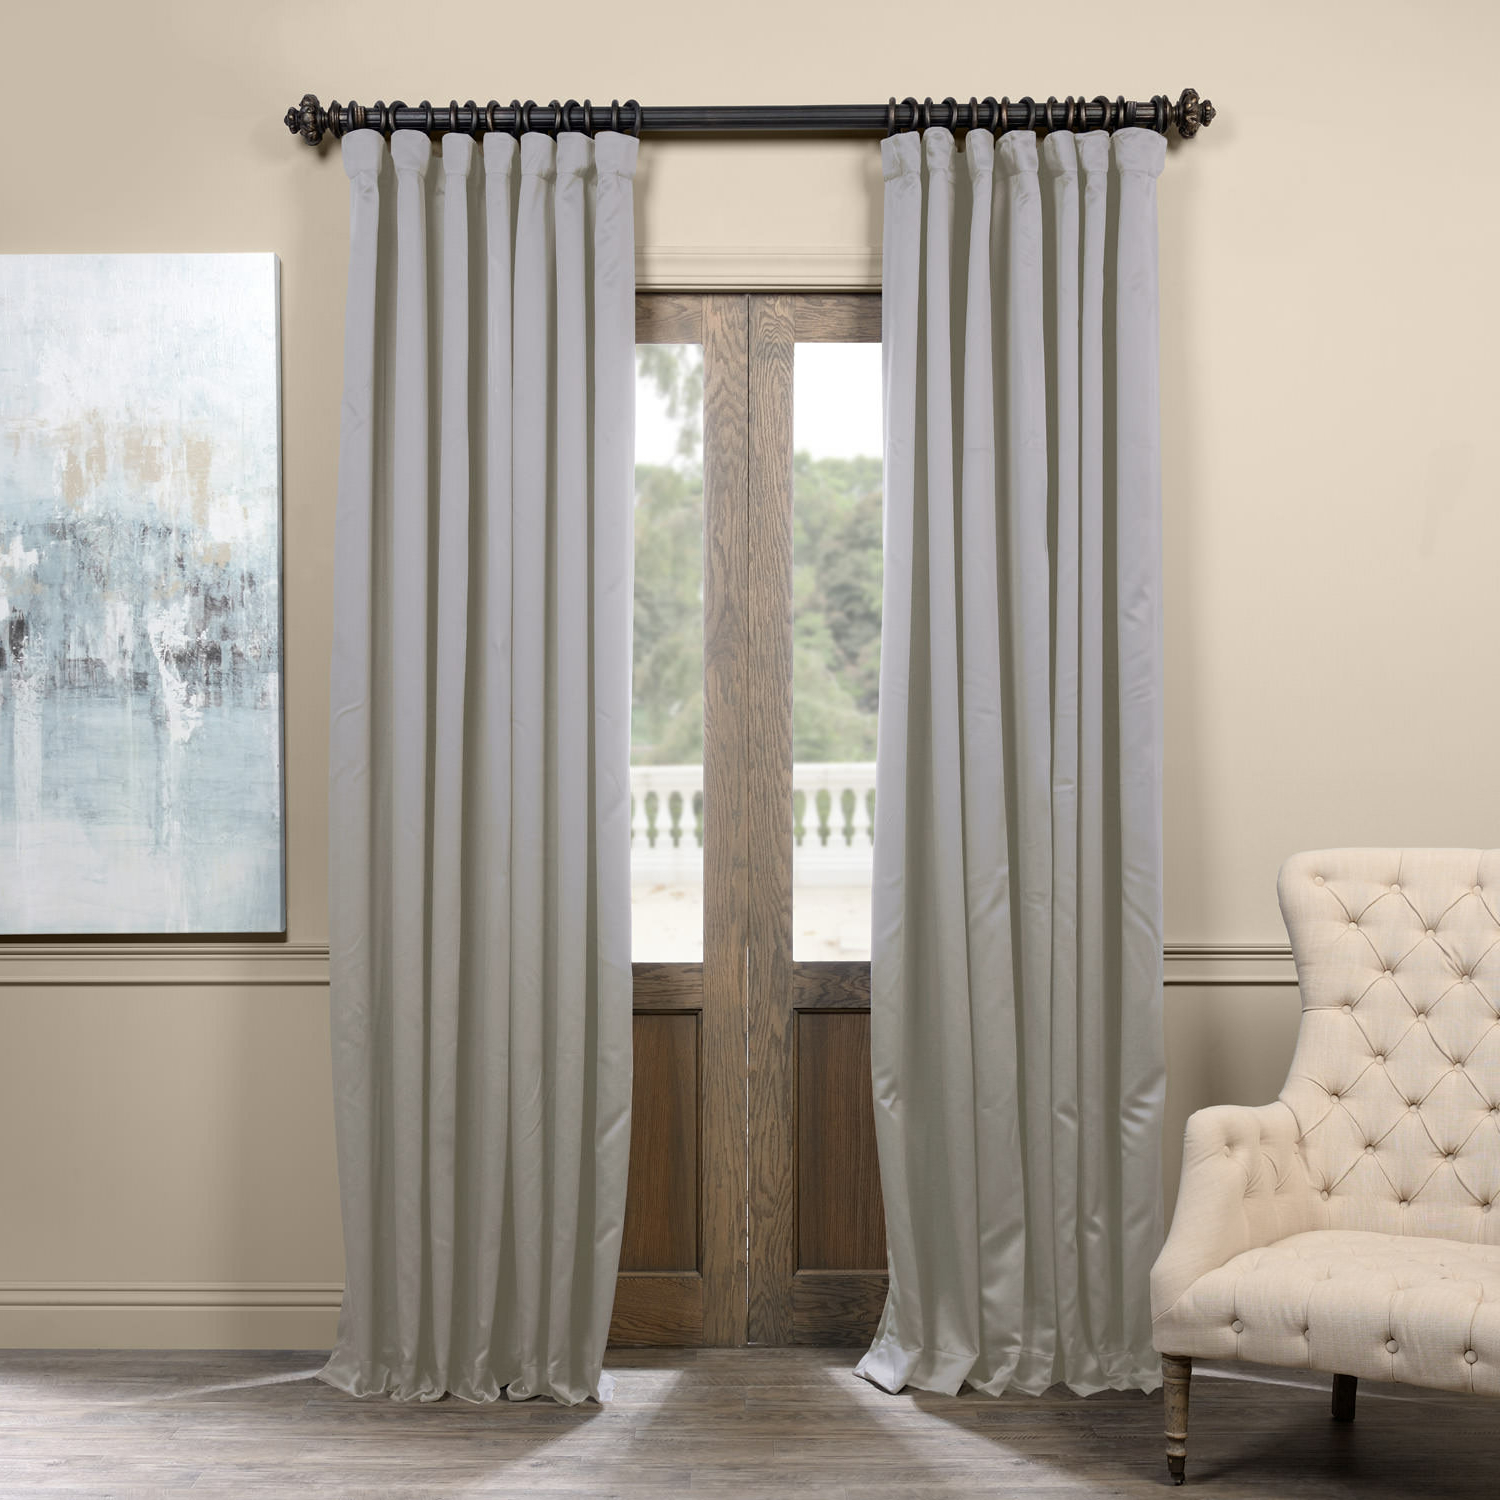 Fashionable Aldreda Extra Wide Solid Blackout Thermal Rod Pocket Single Curtain Panel Throughout Faux Silk Extra Wide Blackout Single Curtain Panels (Gallery 15 of 20)